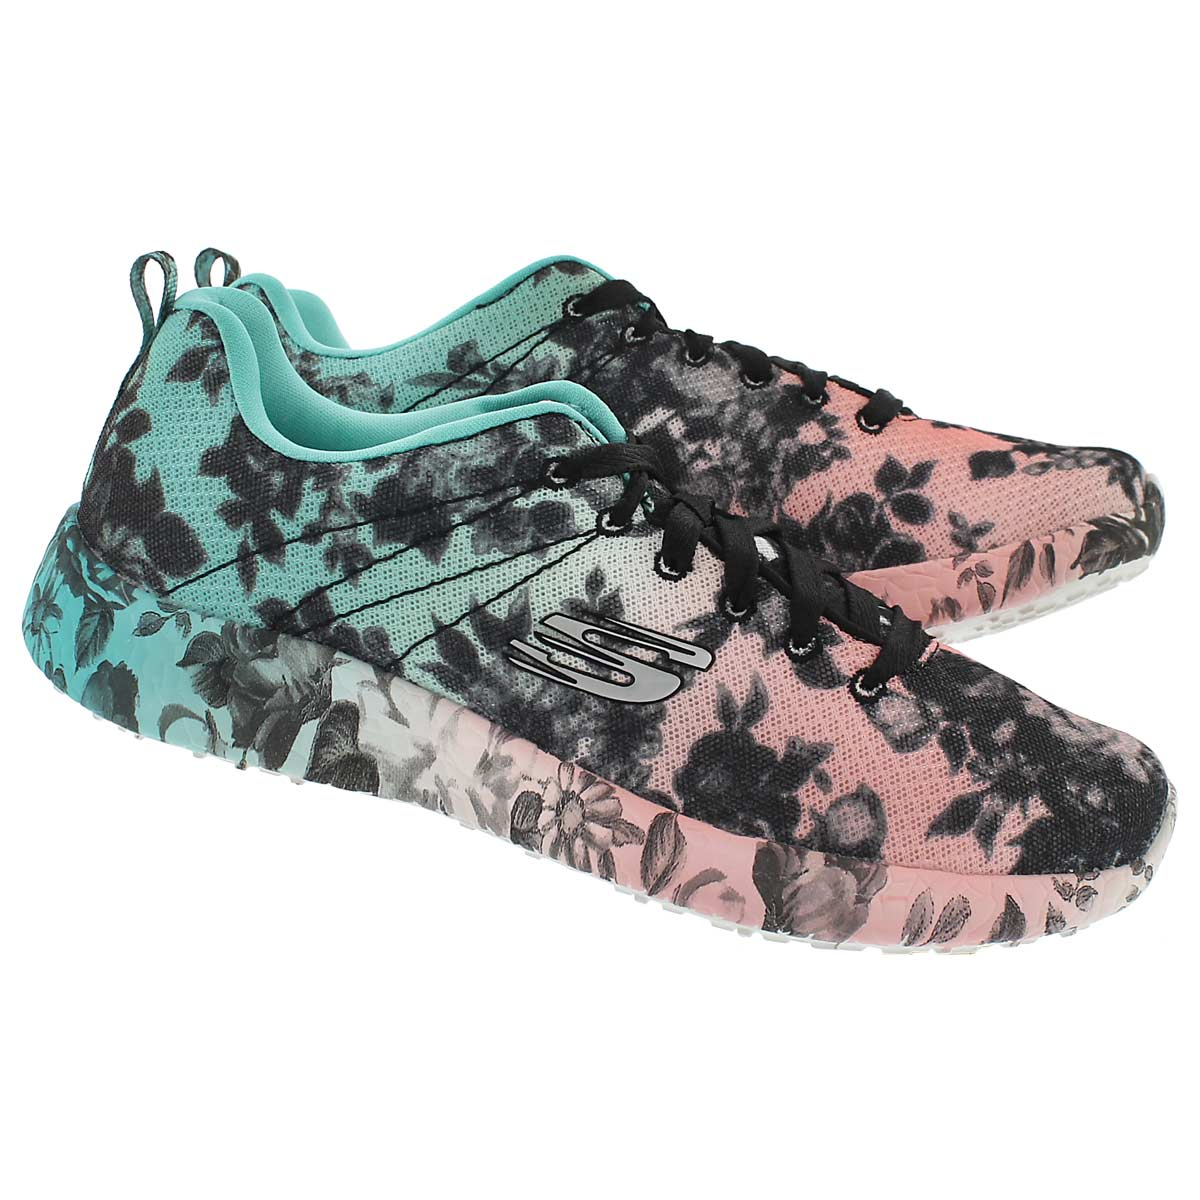 Lds Burst multi coloured lace up sneaker